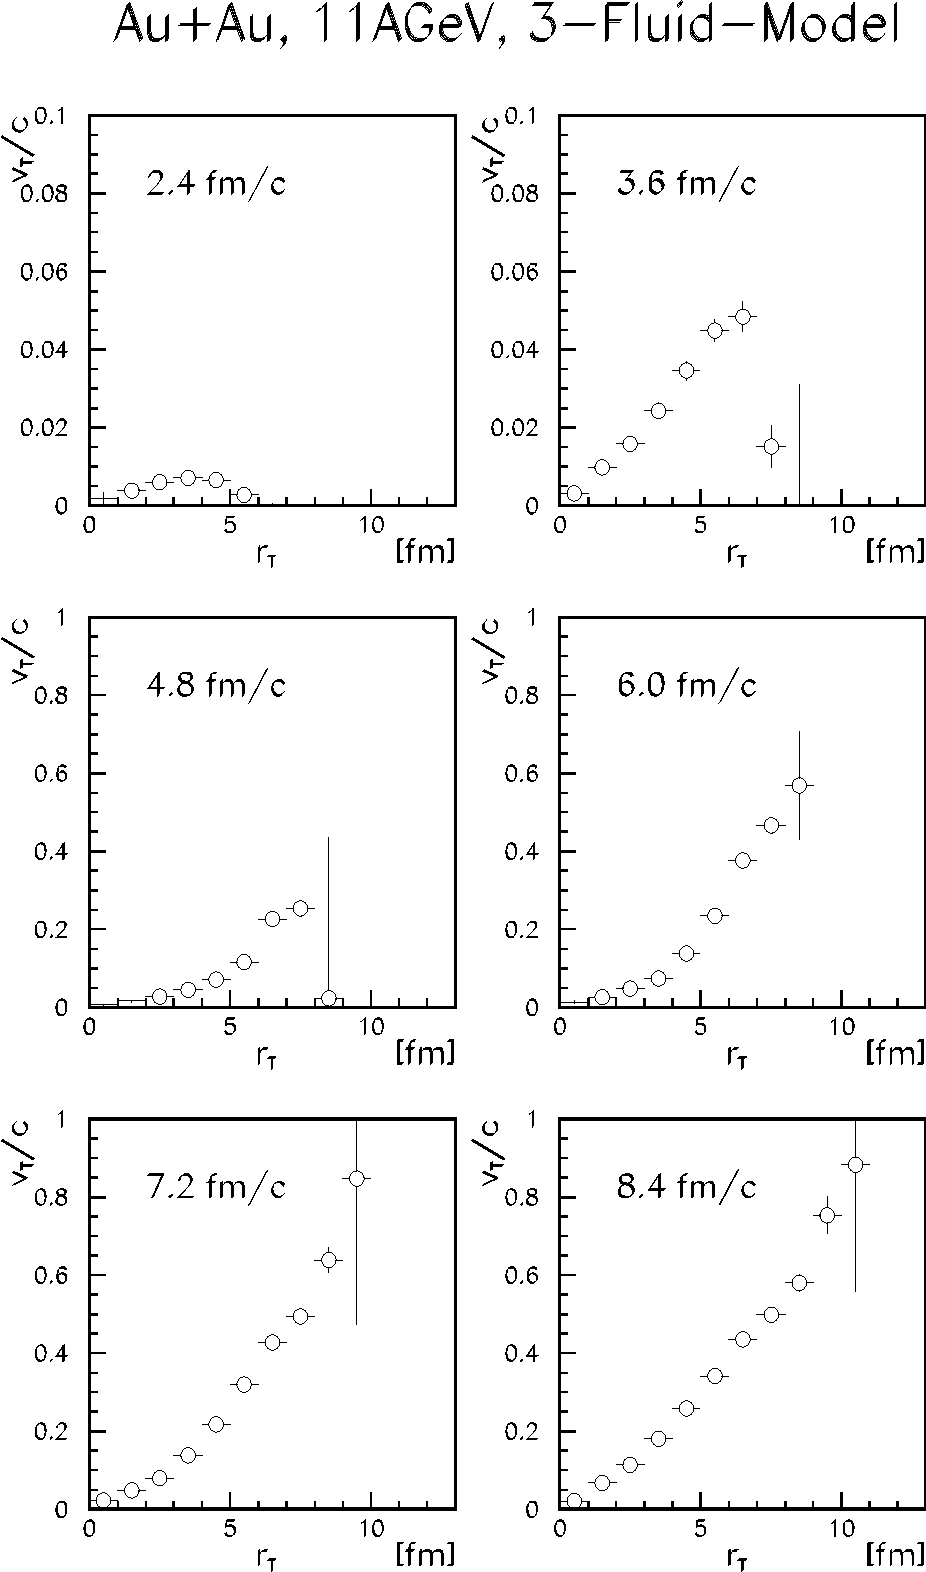 Figure 3: The evolution of the transverse velocity profile in the three-fluid model (b=0 fm).